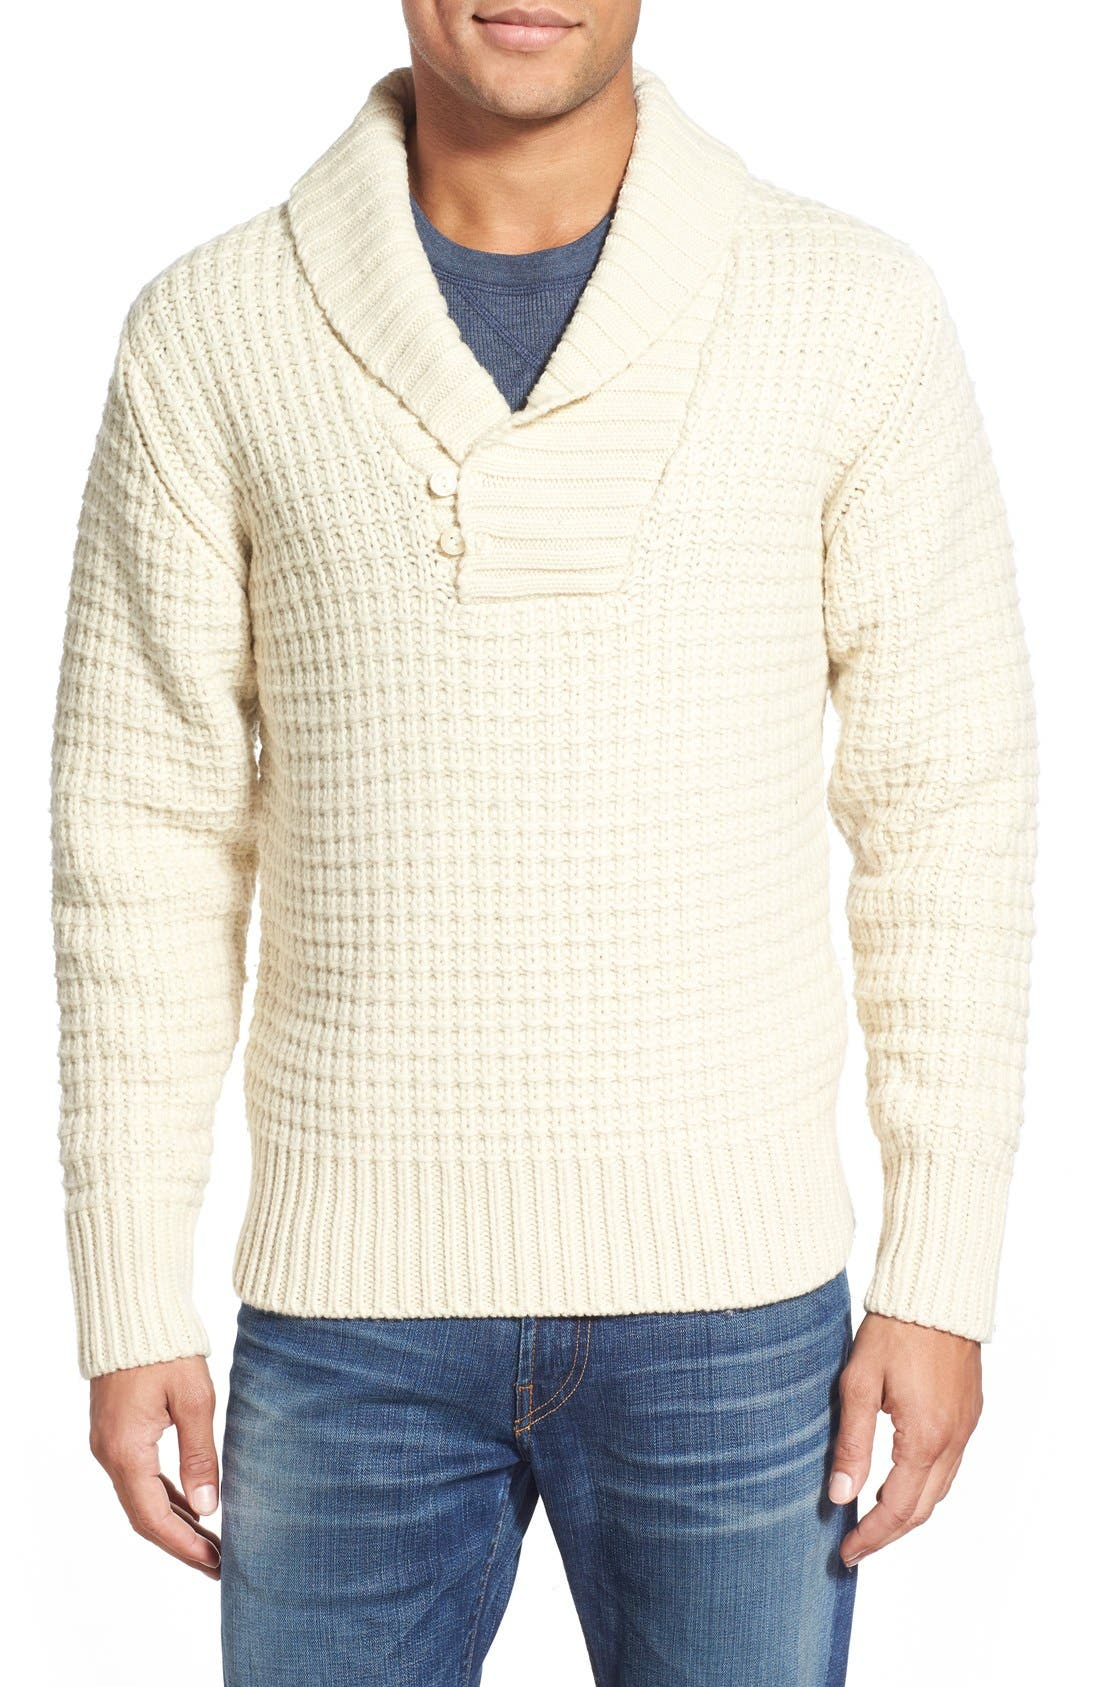 Men's White Shawl Collar Sweaters | Nordstrom